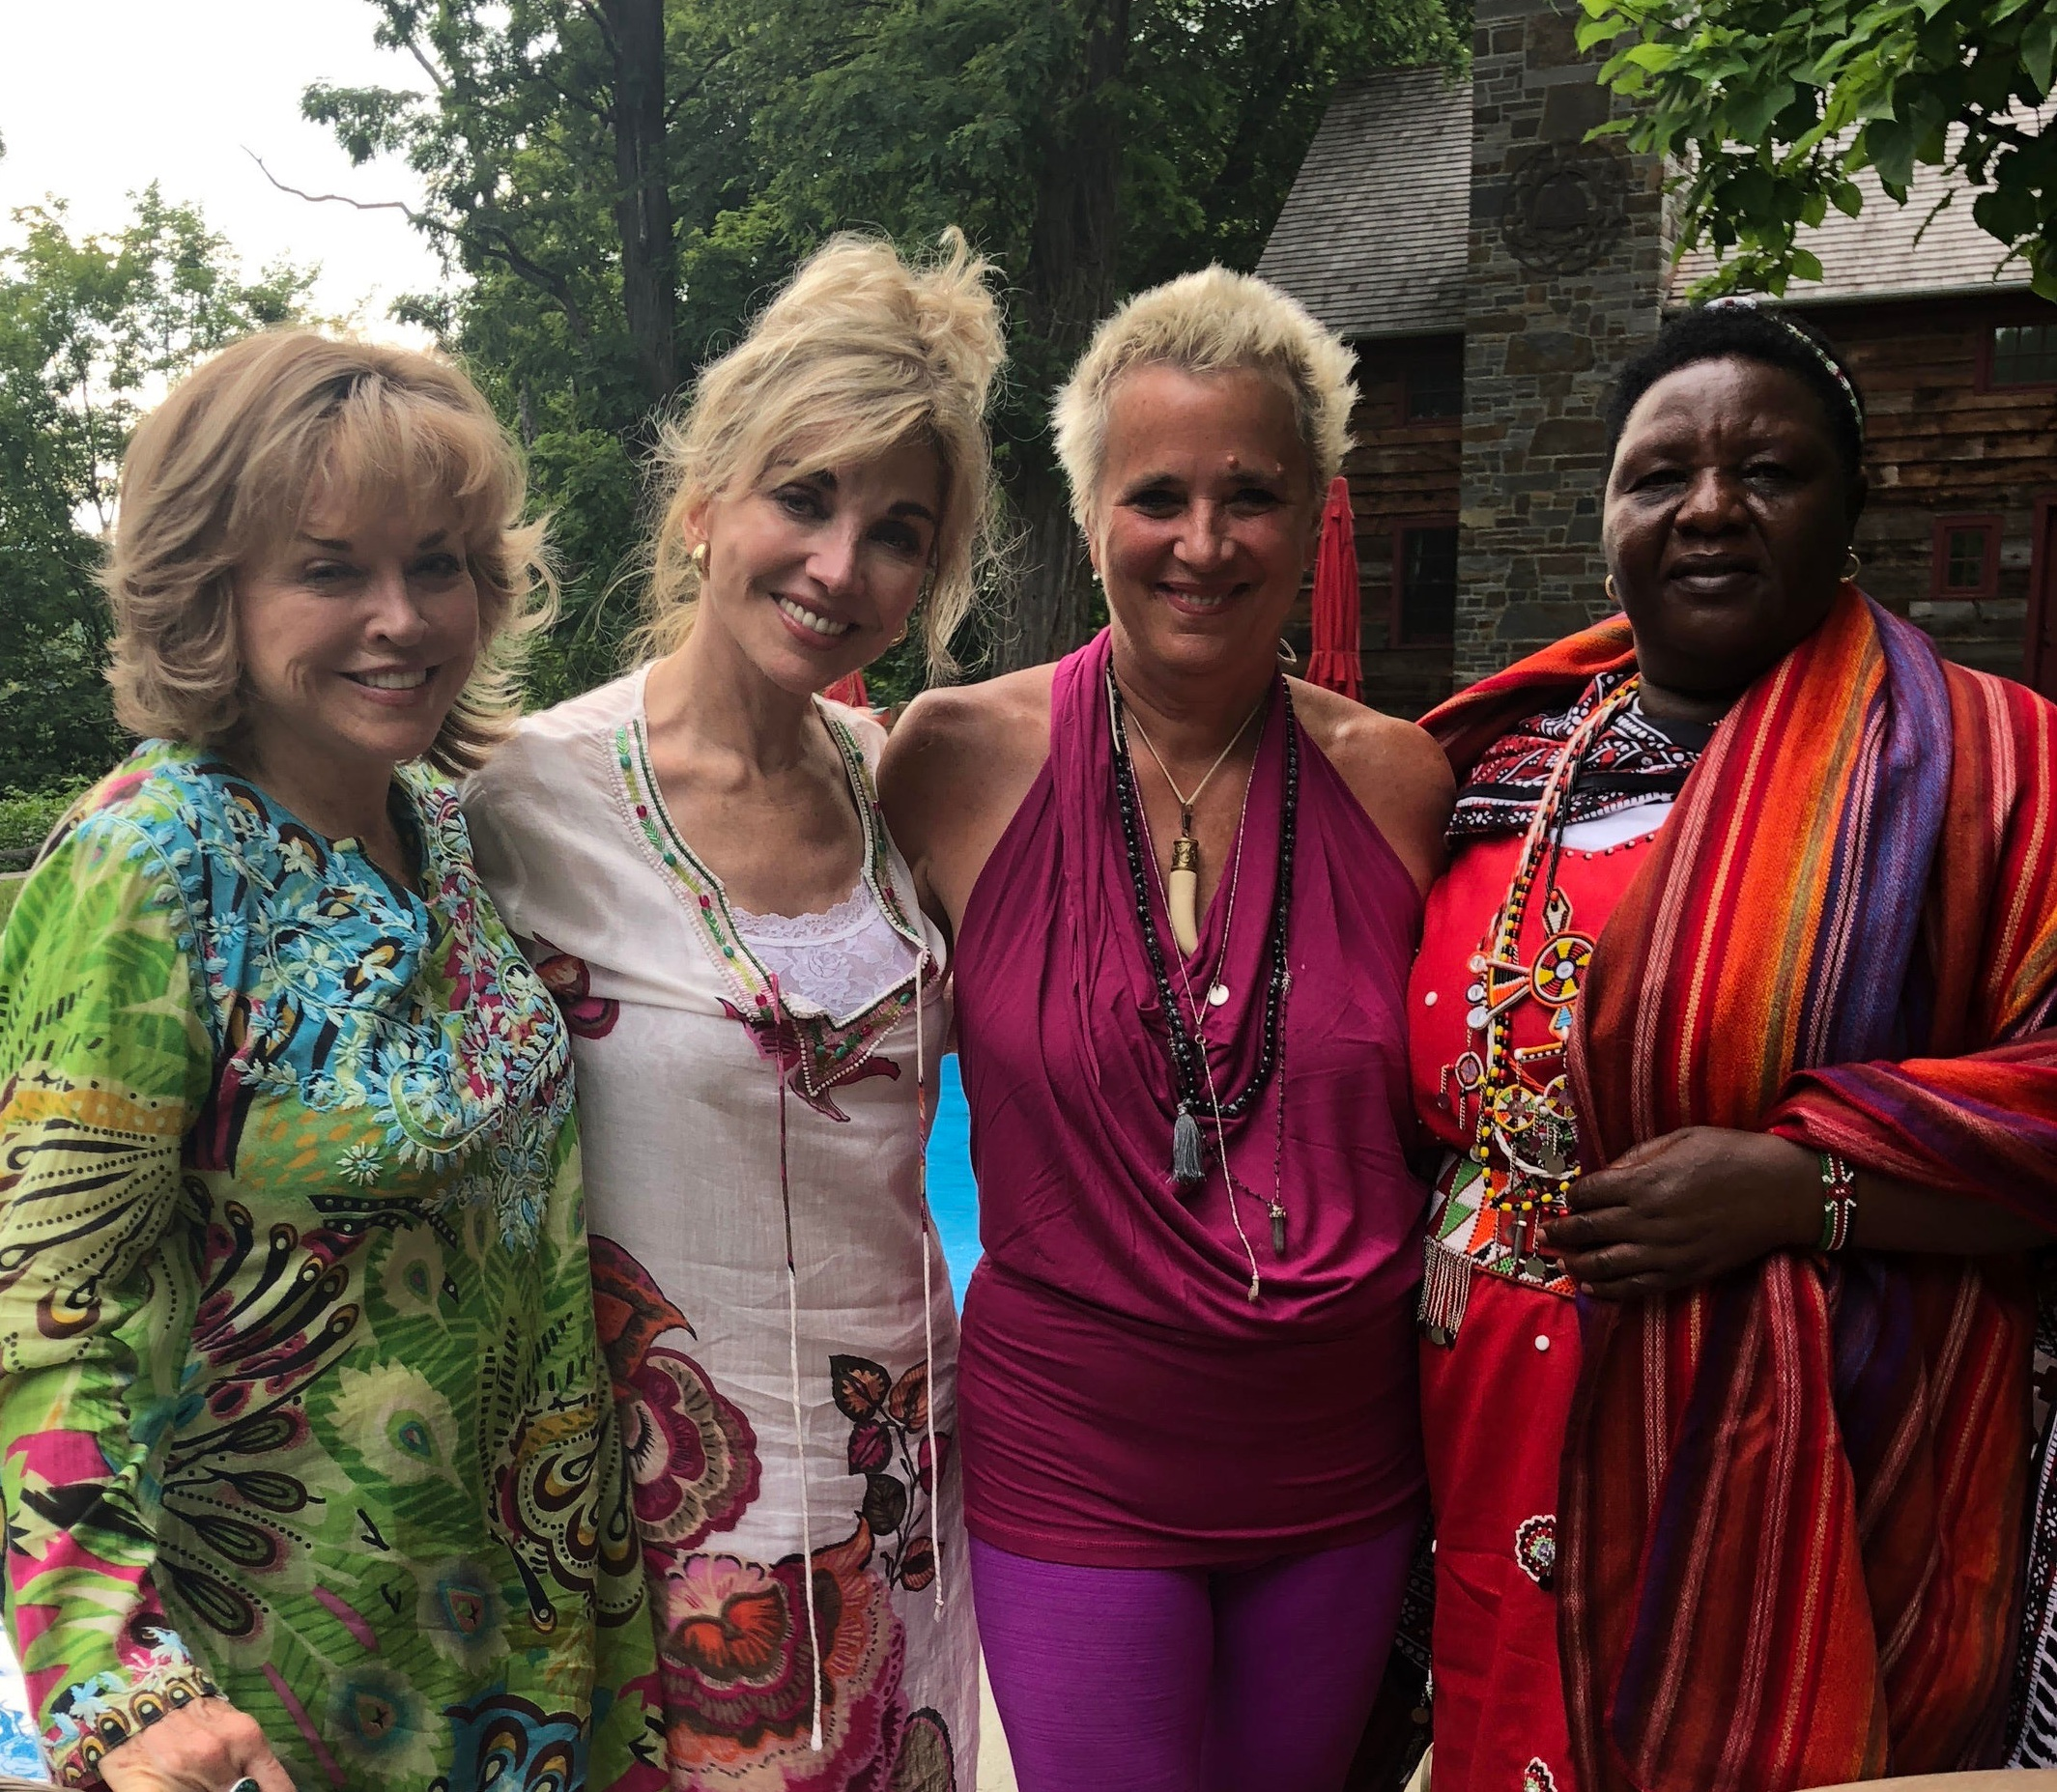 V-Day board members Pat Mitchell and Carole Black, with V-Day founder Eve Ensler and Agnes Pareyo, Masai activist and anti-FGM leader.